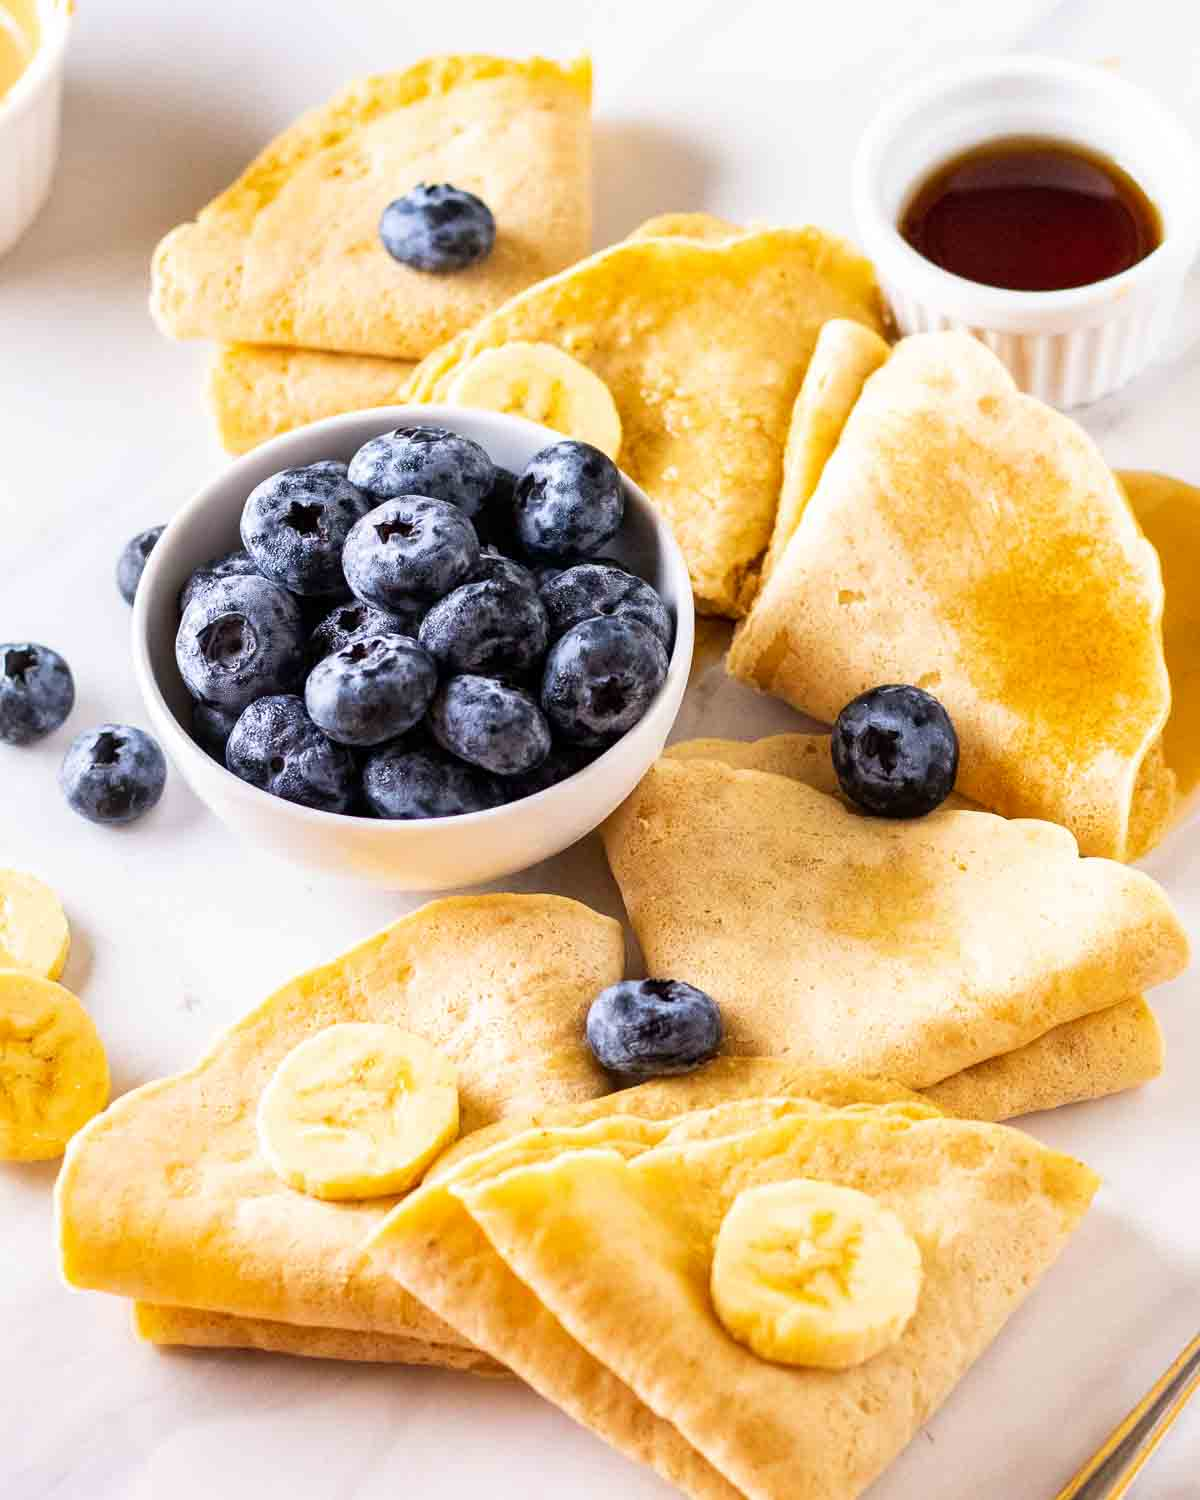 Folded crepes topped with banana and blueberries with maple syrup and bowl of blueberries beside.